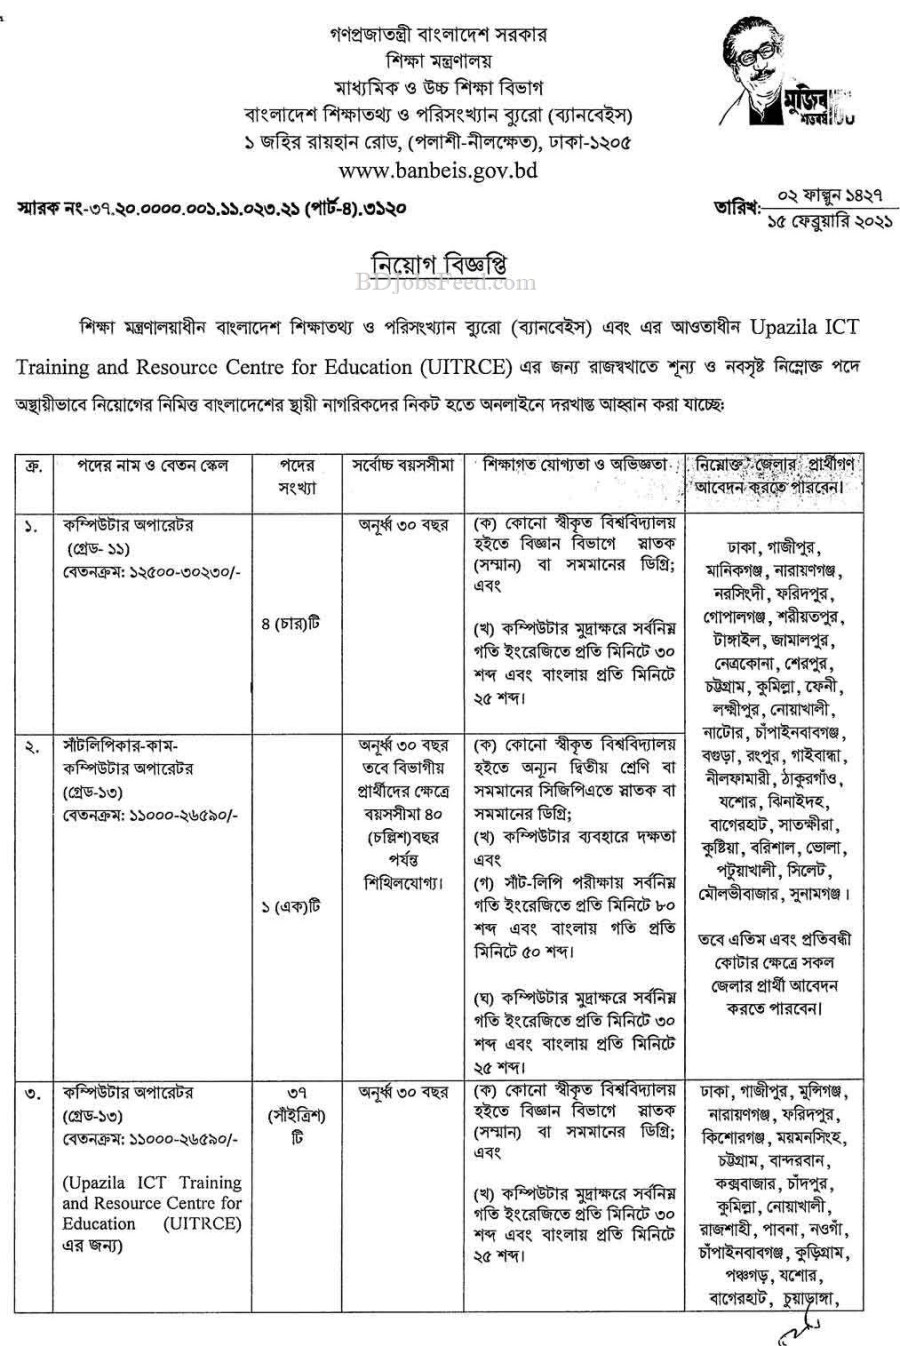 BANBEIS Official Job Circular March 2021 Image